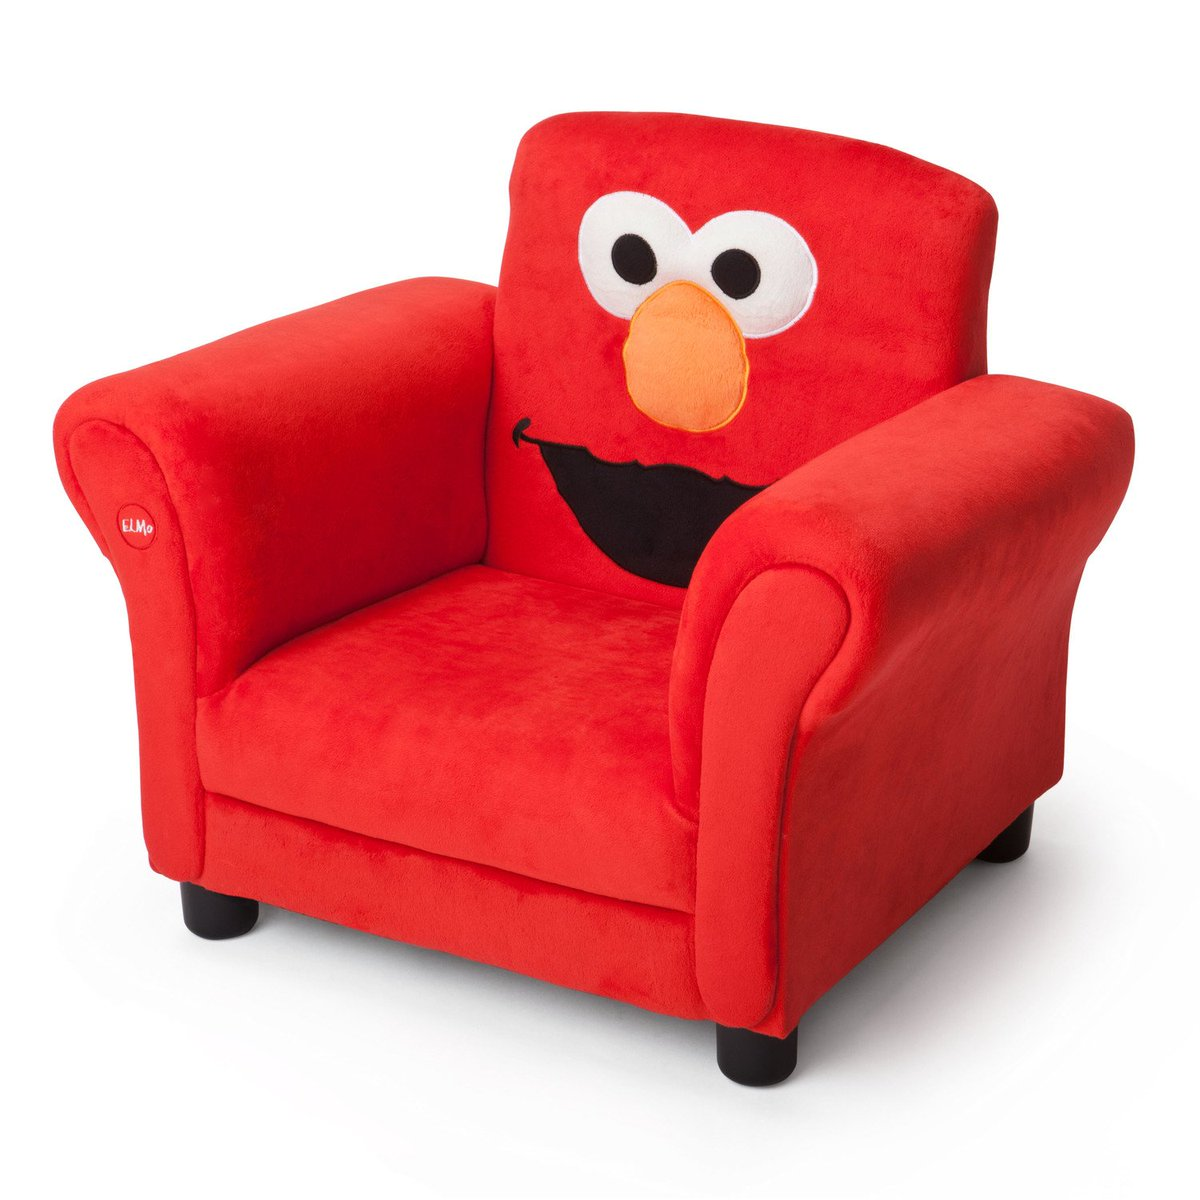 elmo table and chairs where to buy chair covers in ireland flatfair twitter